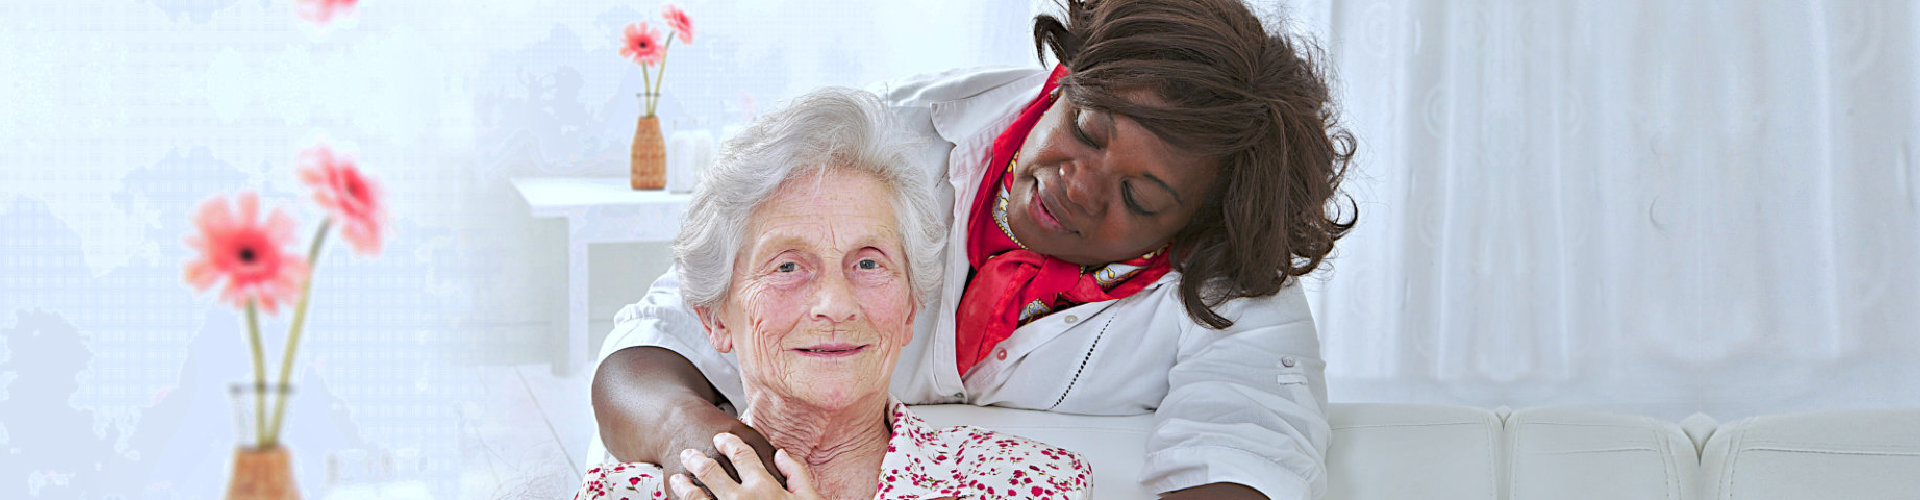 elderly woman smiling with her caregiver watching